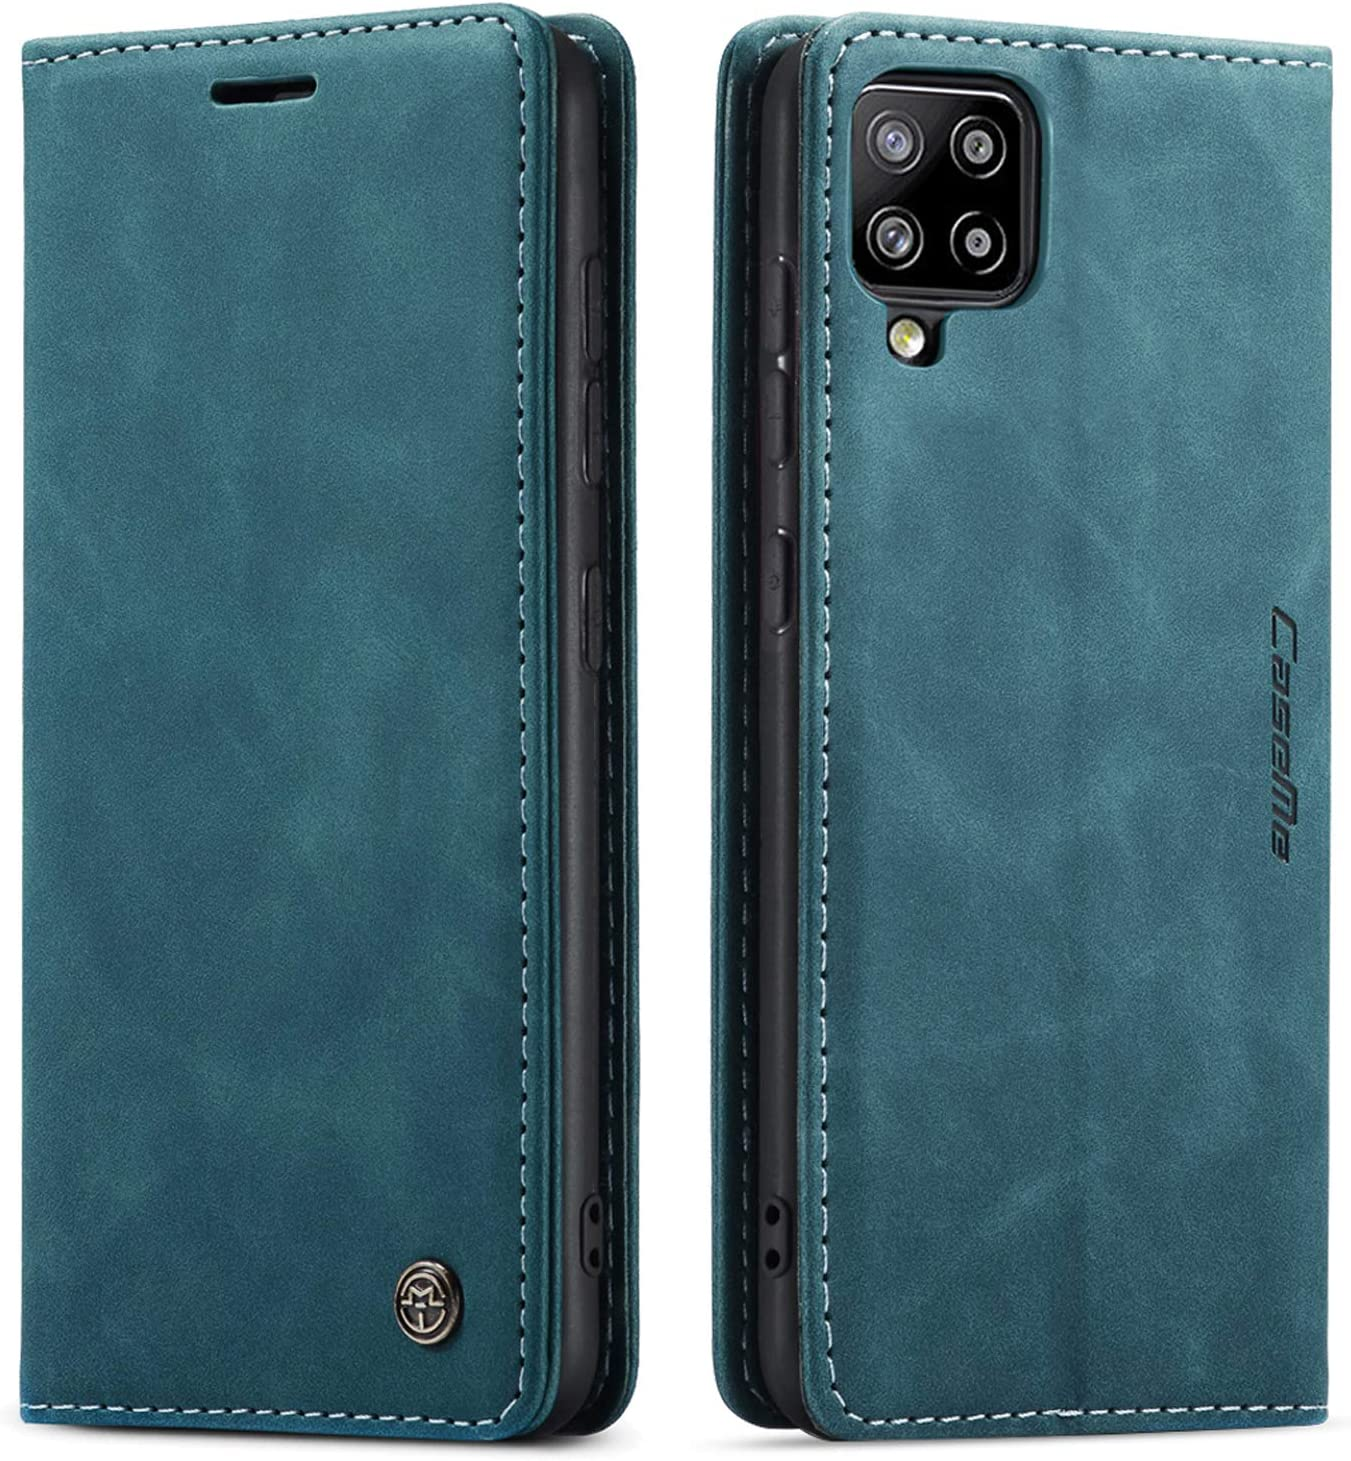 Kowauri Flip Case for Samsung Galaxy A42 5G,Leather Wallet Case Classic Design with Card Slot and Magnetic Closure Flip Fold Case for Samsung Galaxy A42 5G (Teal)